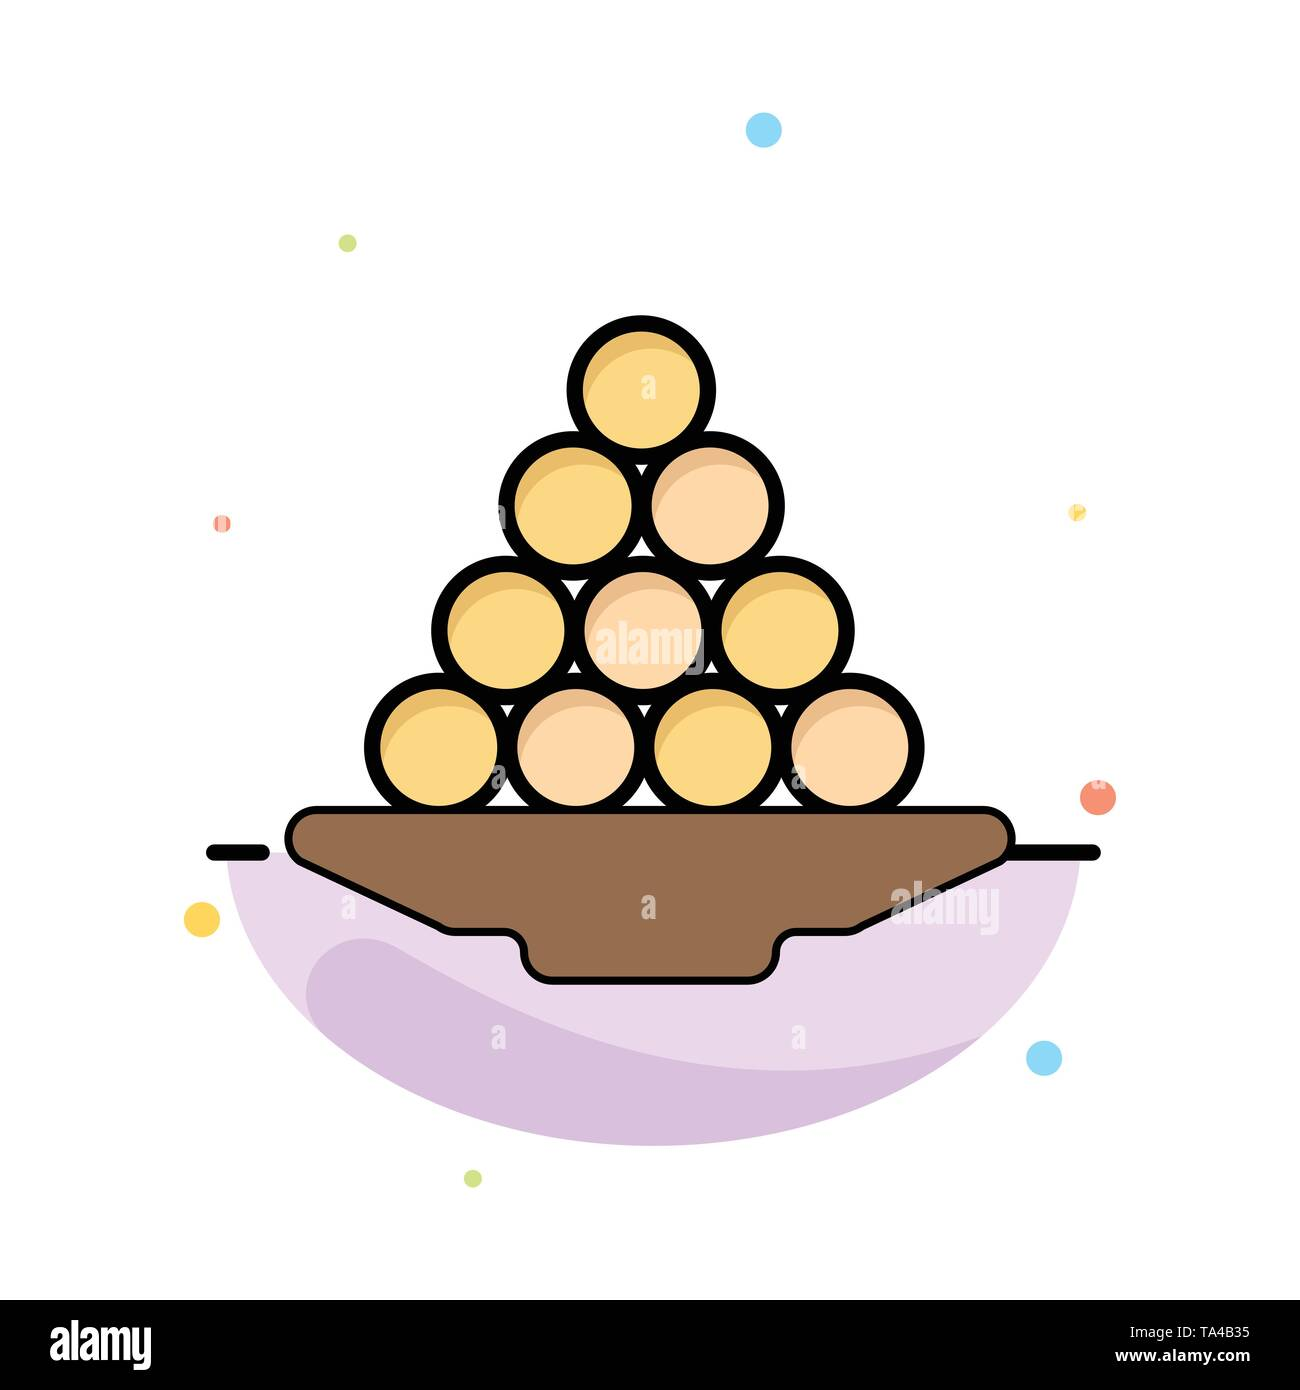 Bowl, Delicacy, Dessert, Indian, Laddu, Sweet, Treat Abstract Flat Color Icon Template - Stock Image